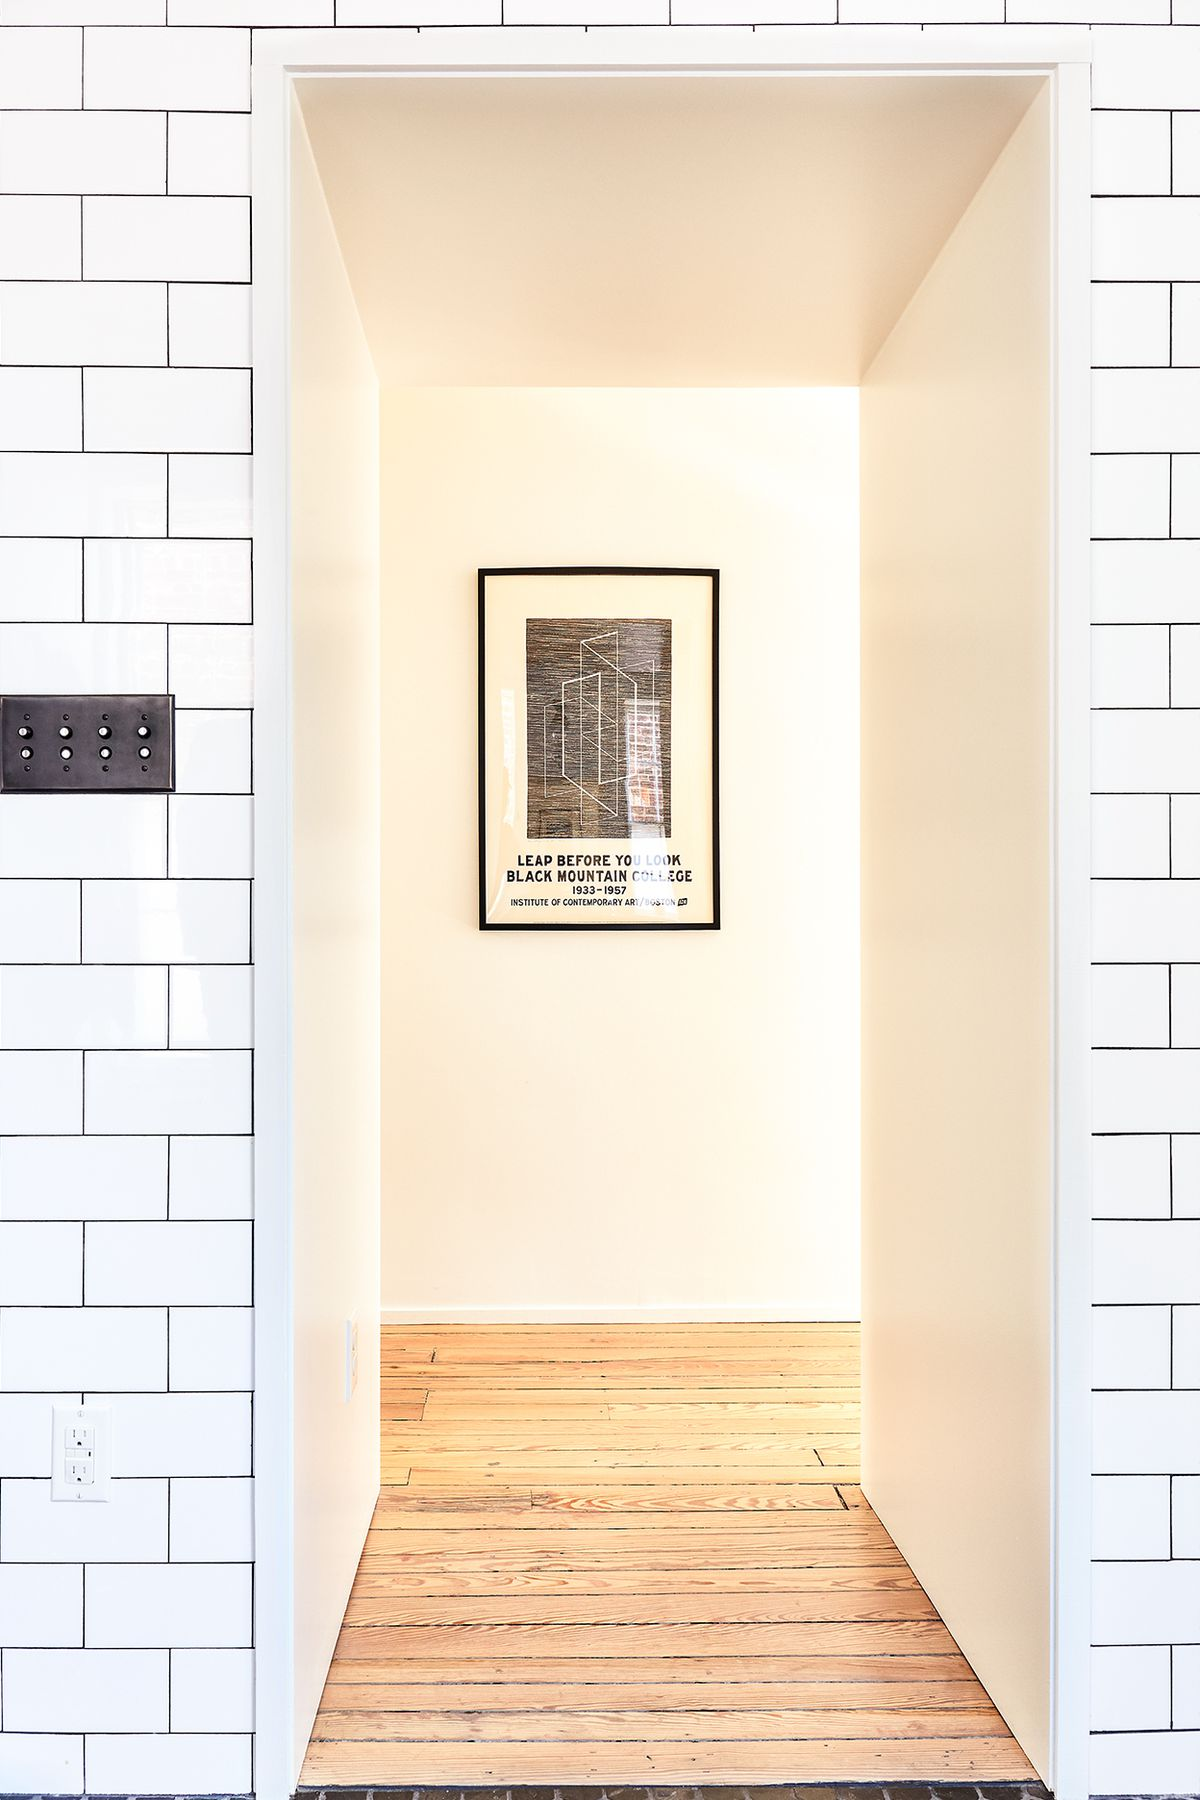 A hallway. The wall is covered in white tiles and the floor is hardwood. There is a framed poster at the end of the hallway.